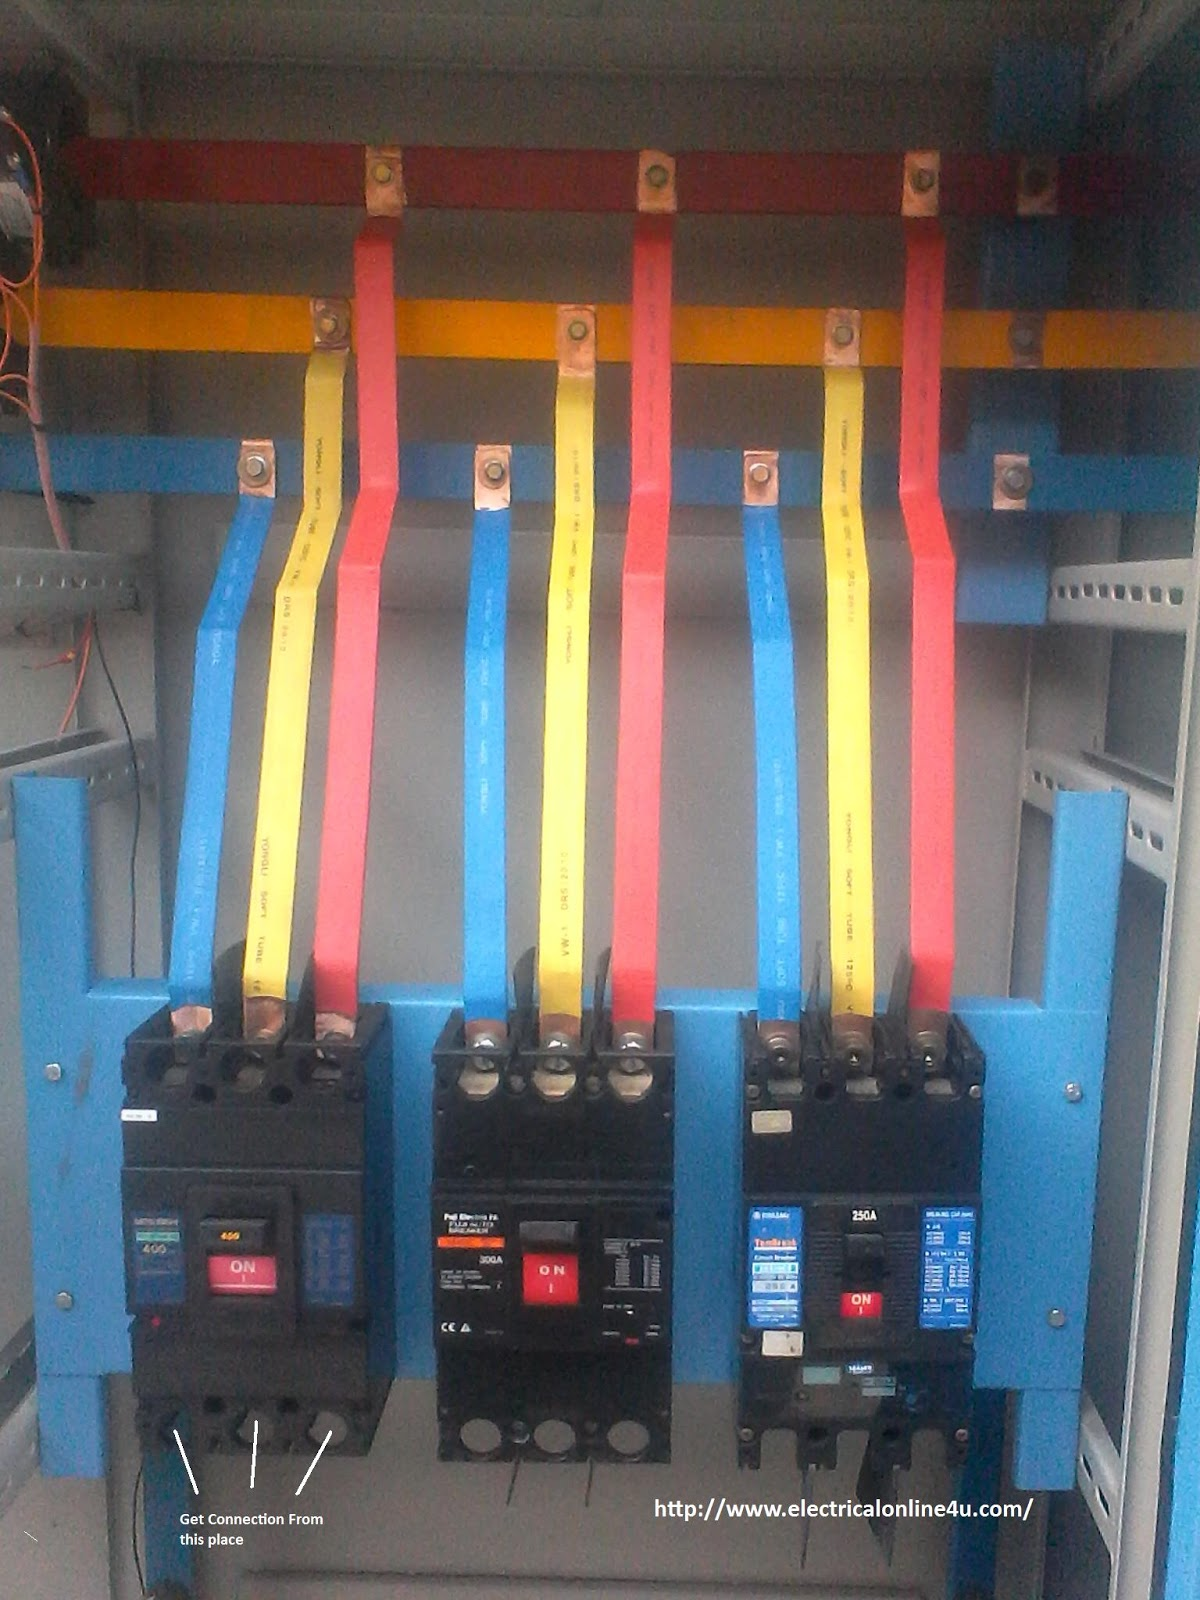 Circuit%2BBreaker%2BInstallation%2BFor%2BThree%2BPhase%2BSupply circuit breaker installation for three phase supply 3 phase schneider mccb motorized wiring diagram at reclaimingppi.co